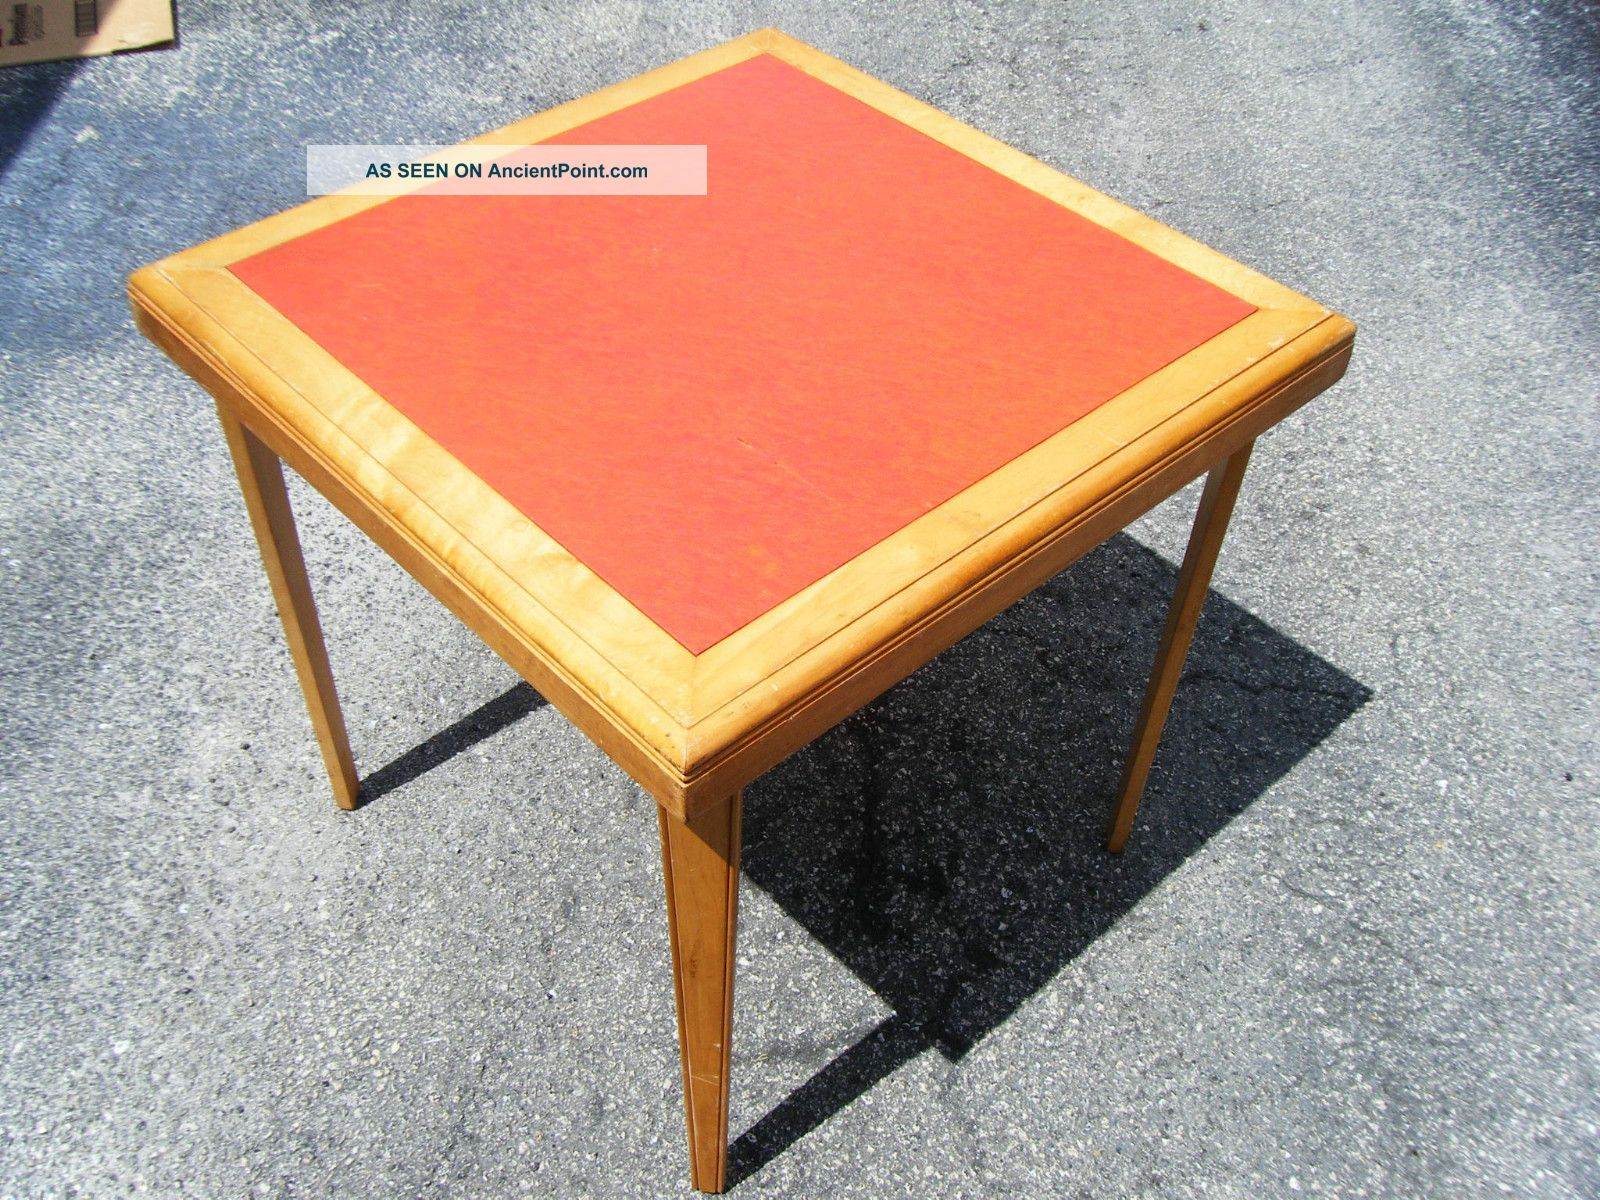 Card Table - Vintage Stakmore Aristocrats Of Folding Furniture - 1930 ' S Deco 1900-1950 photo